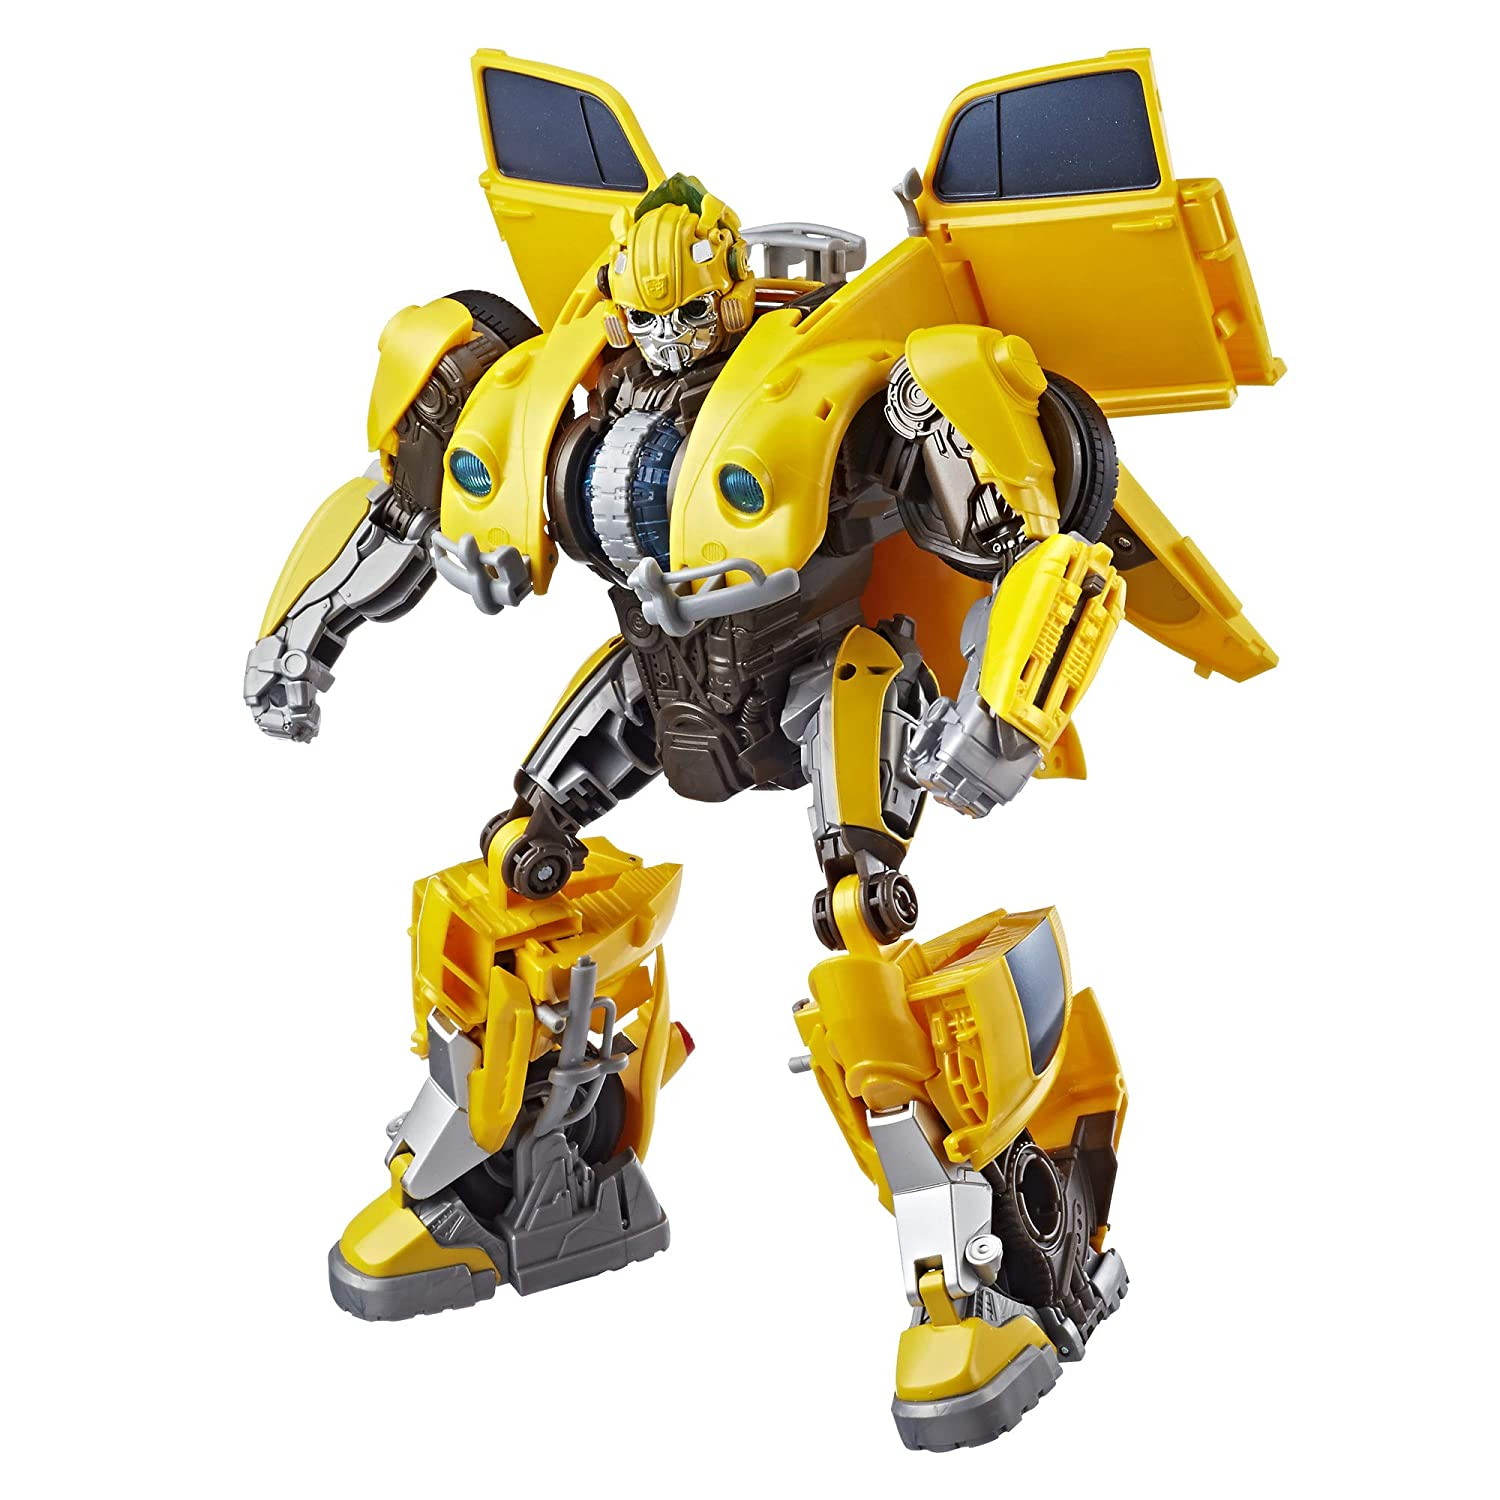 Transformers: Bumblebee Movie Toys